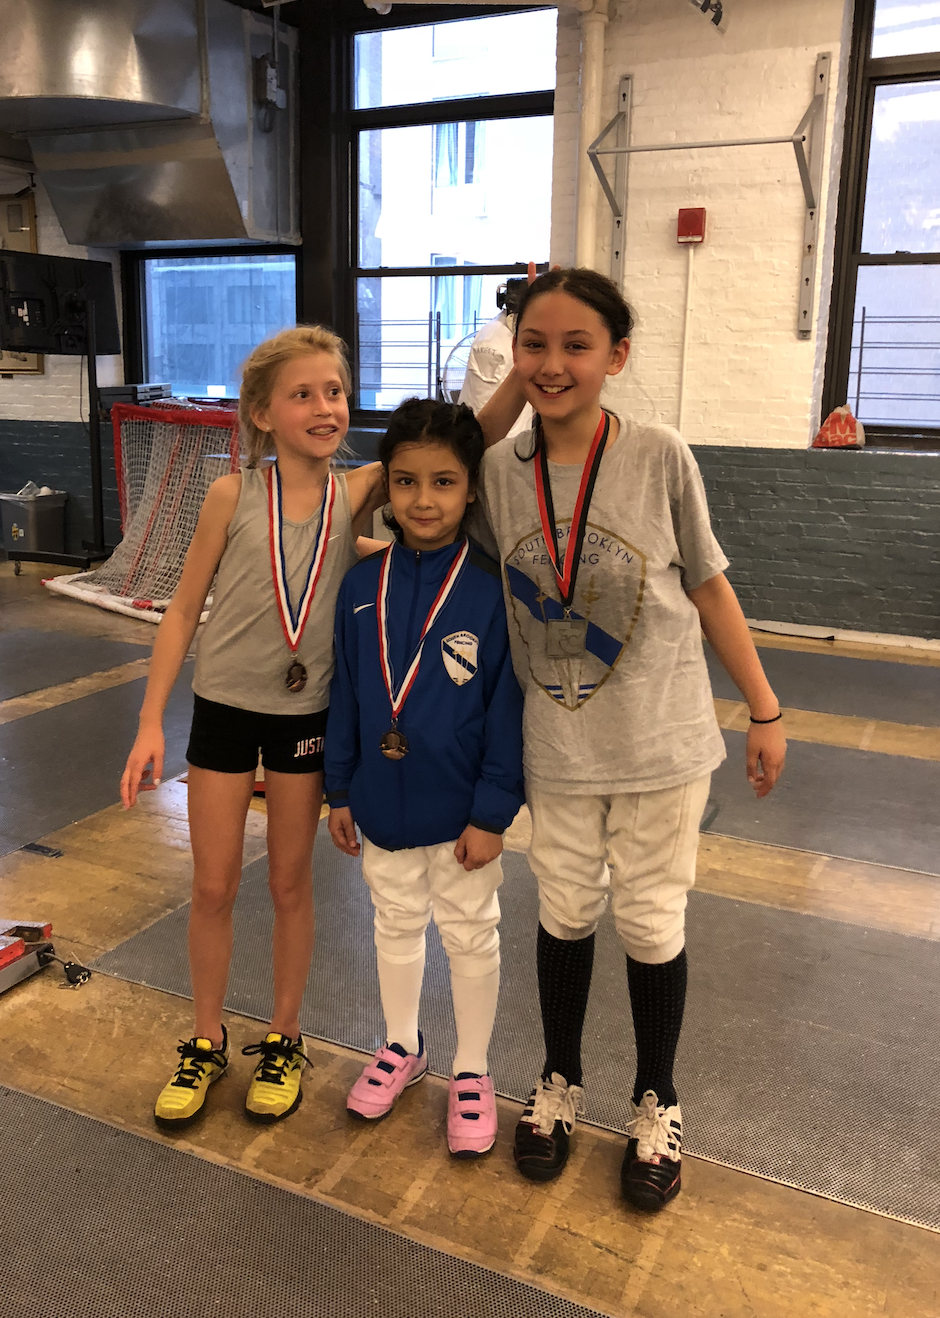 Fencers Club - Y10 women's foil Alex Lambrechts 2nd place Emily Cascone 5th place Mariia Yurkova 6th place  May 26th 2019